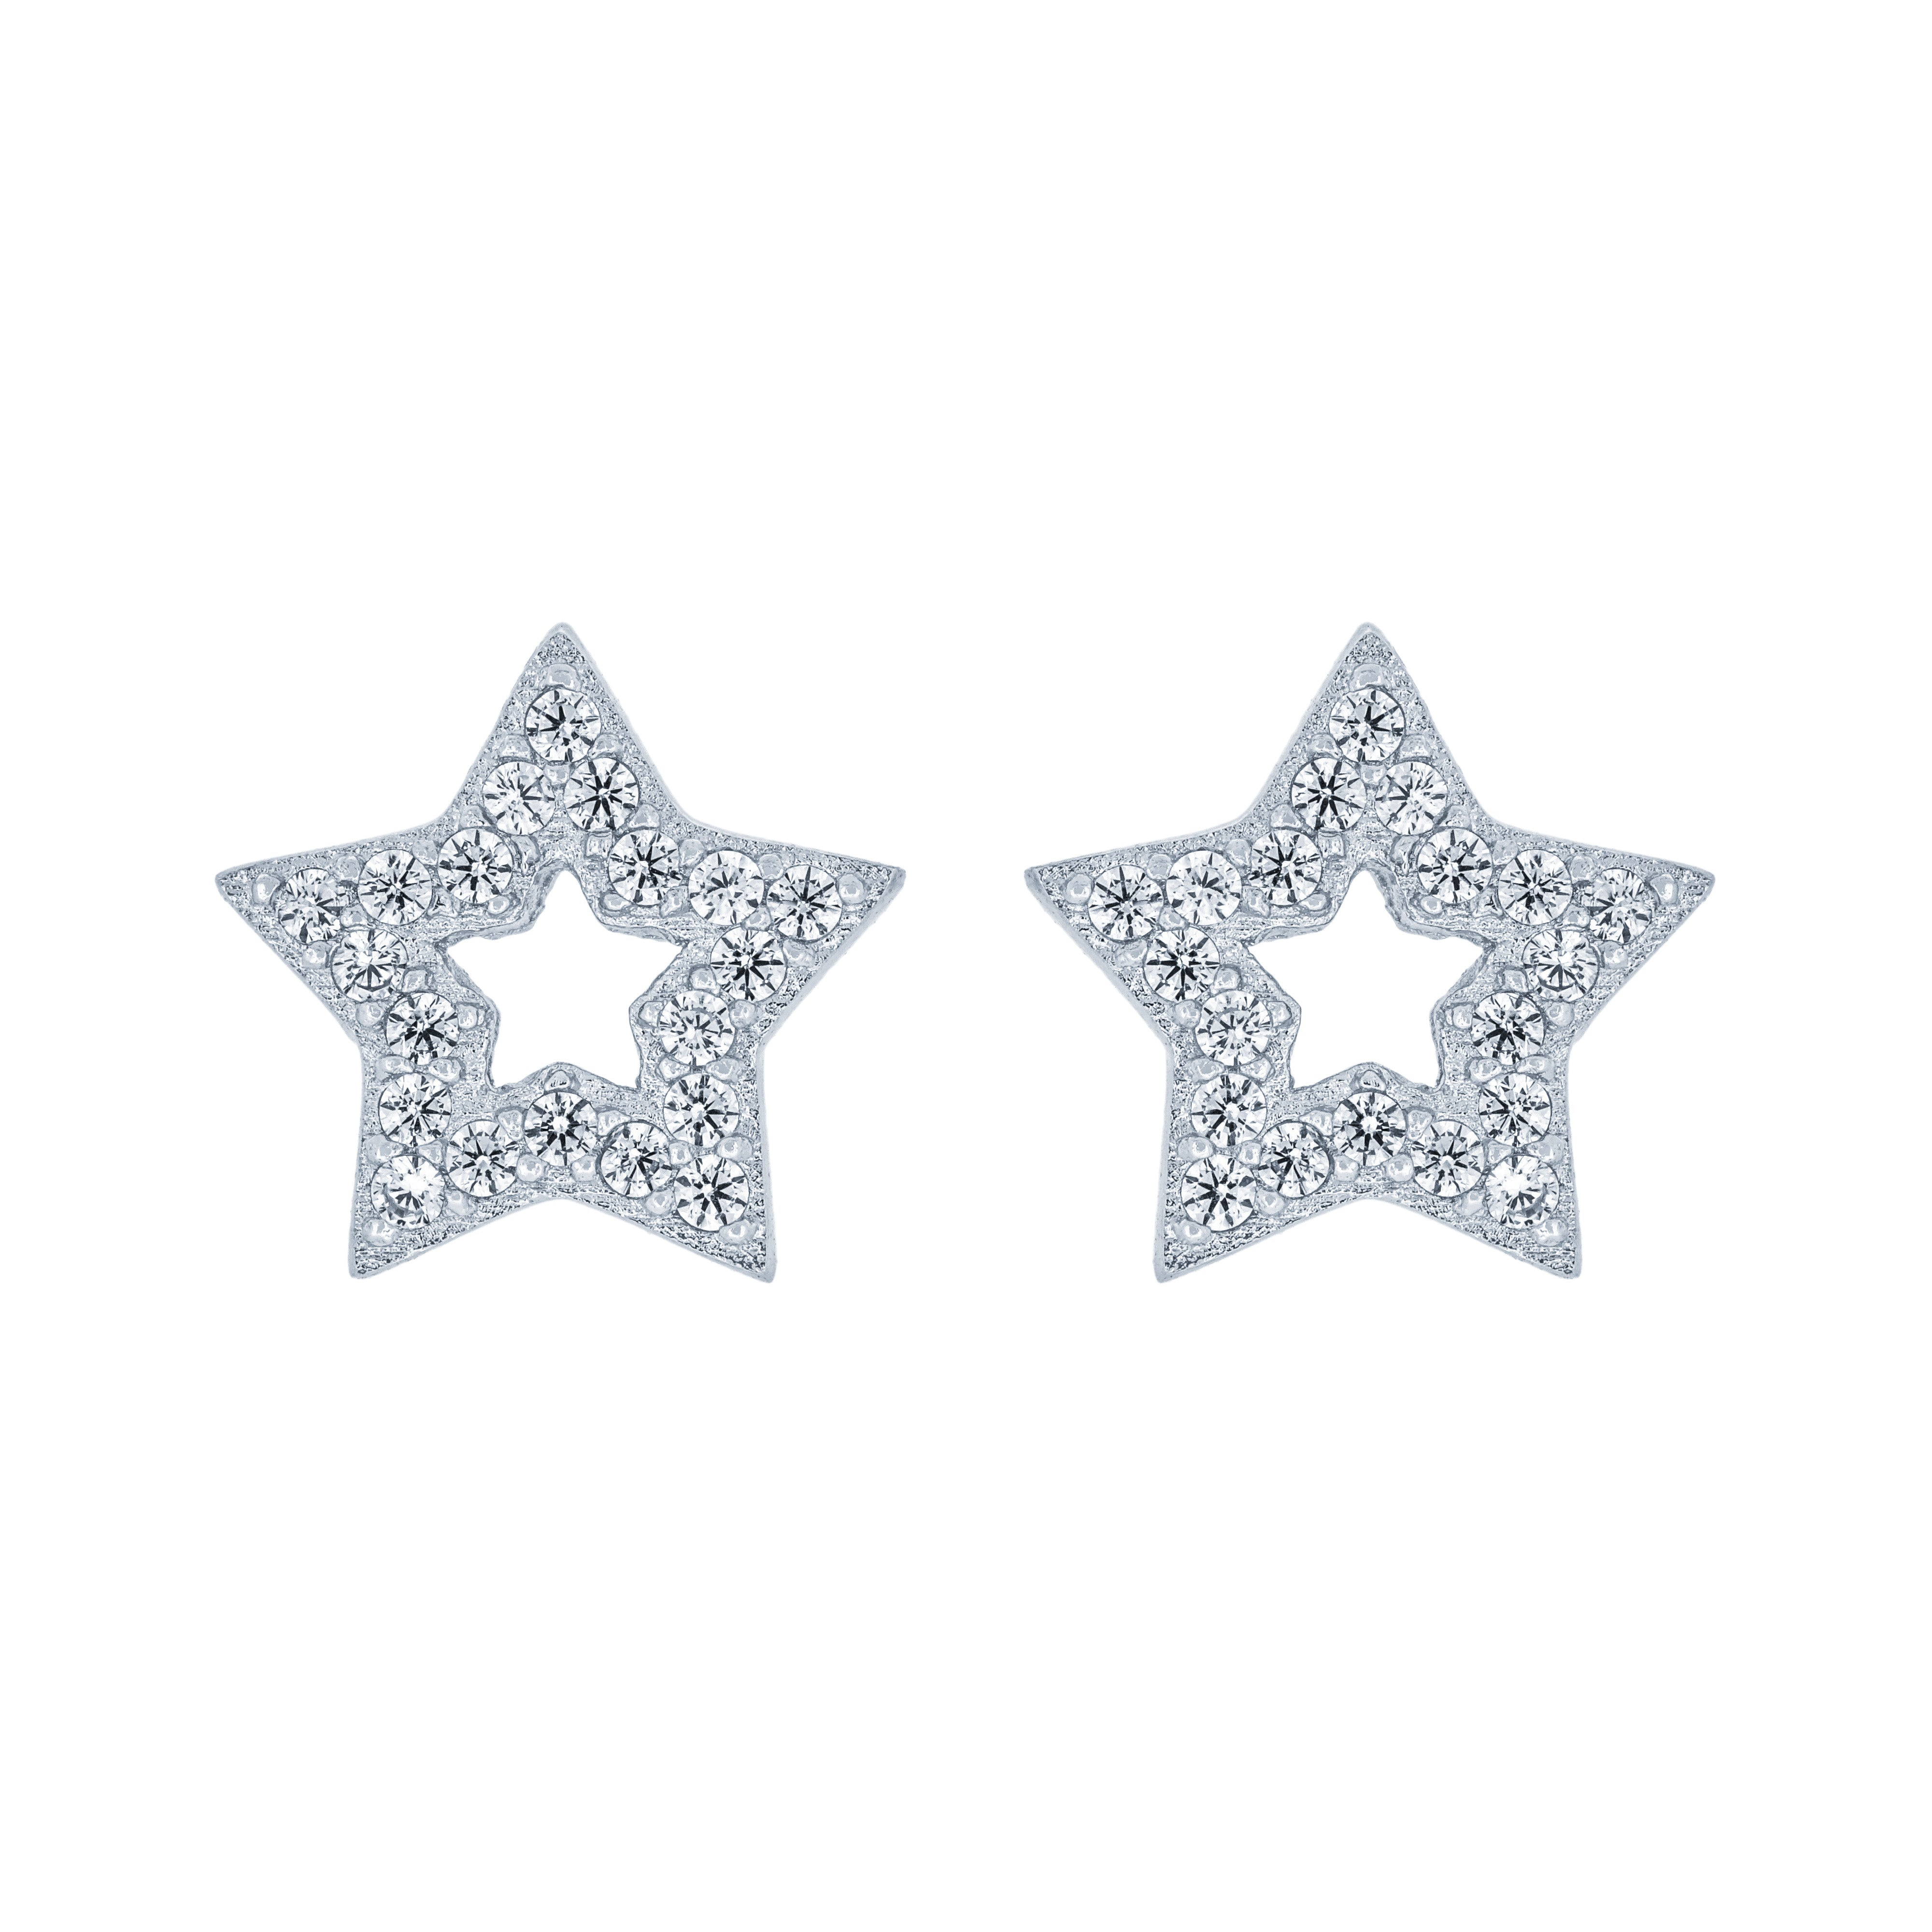 (100052) White Cubic Zirconia Star Stud Earrings In Sterling Silver